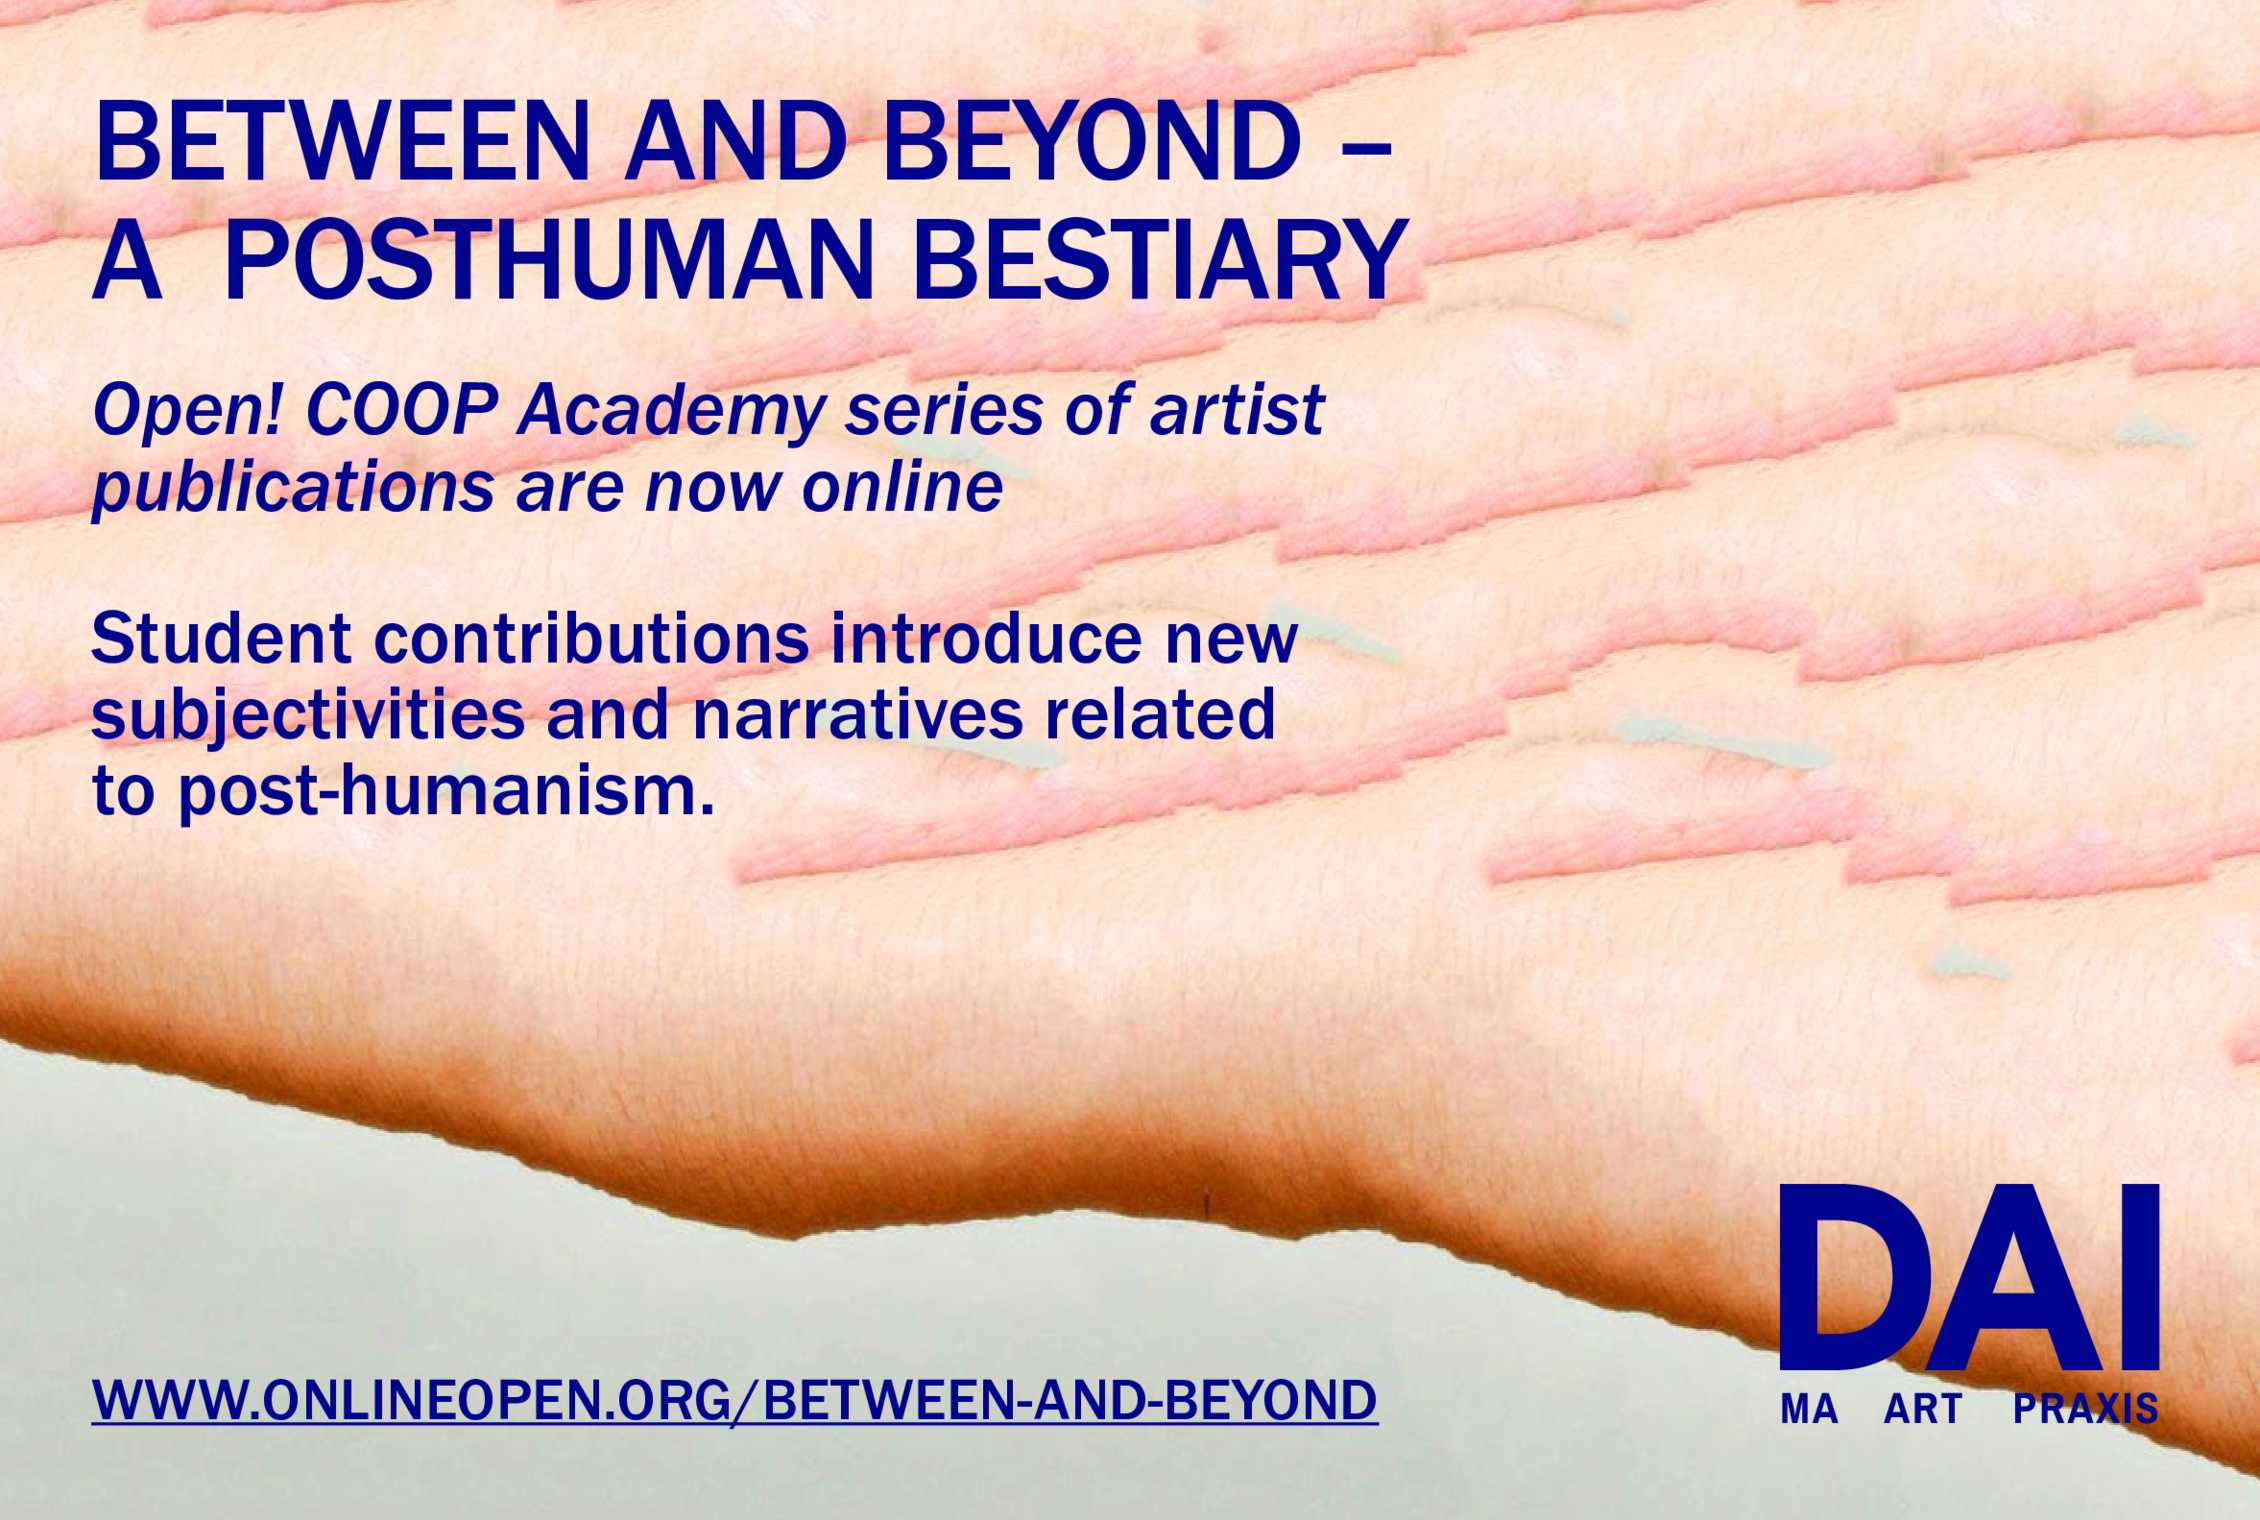 Between and Beyond ~ Open! COOP Academy present on line essays by